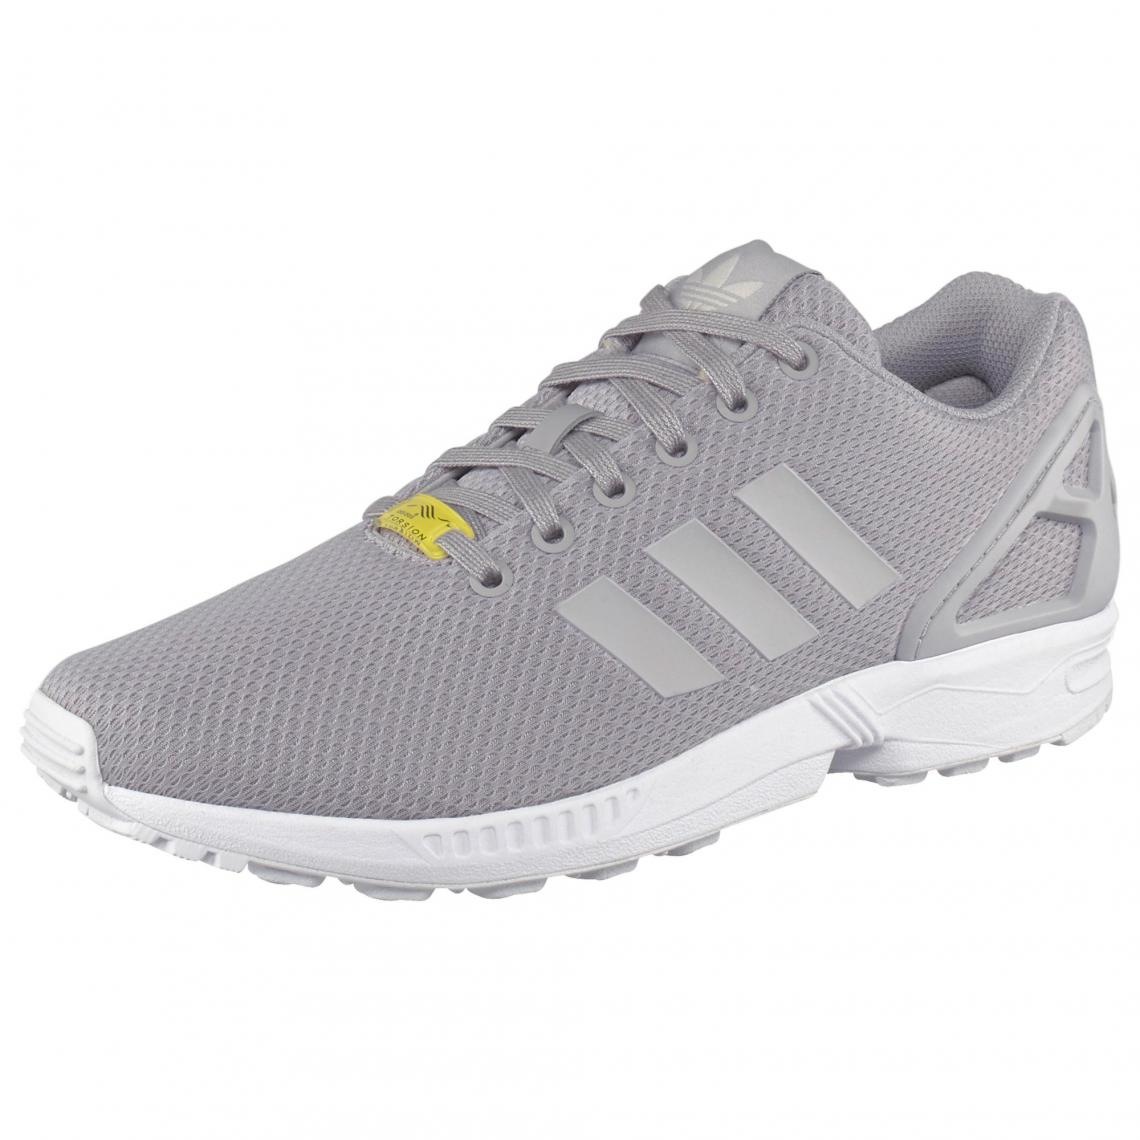 adidas chaussures homme zx